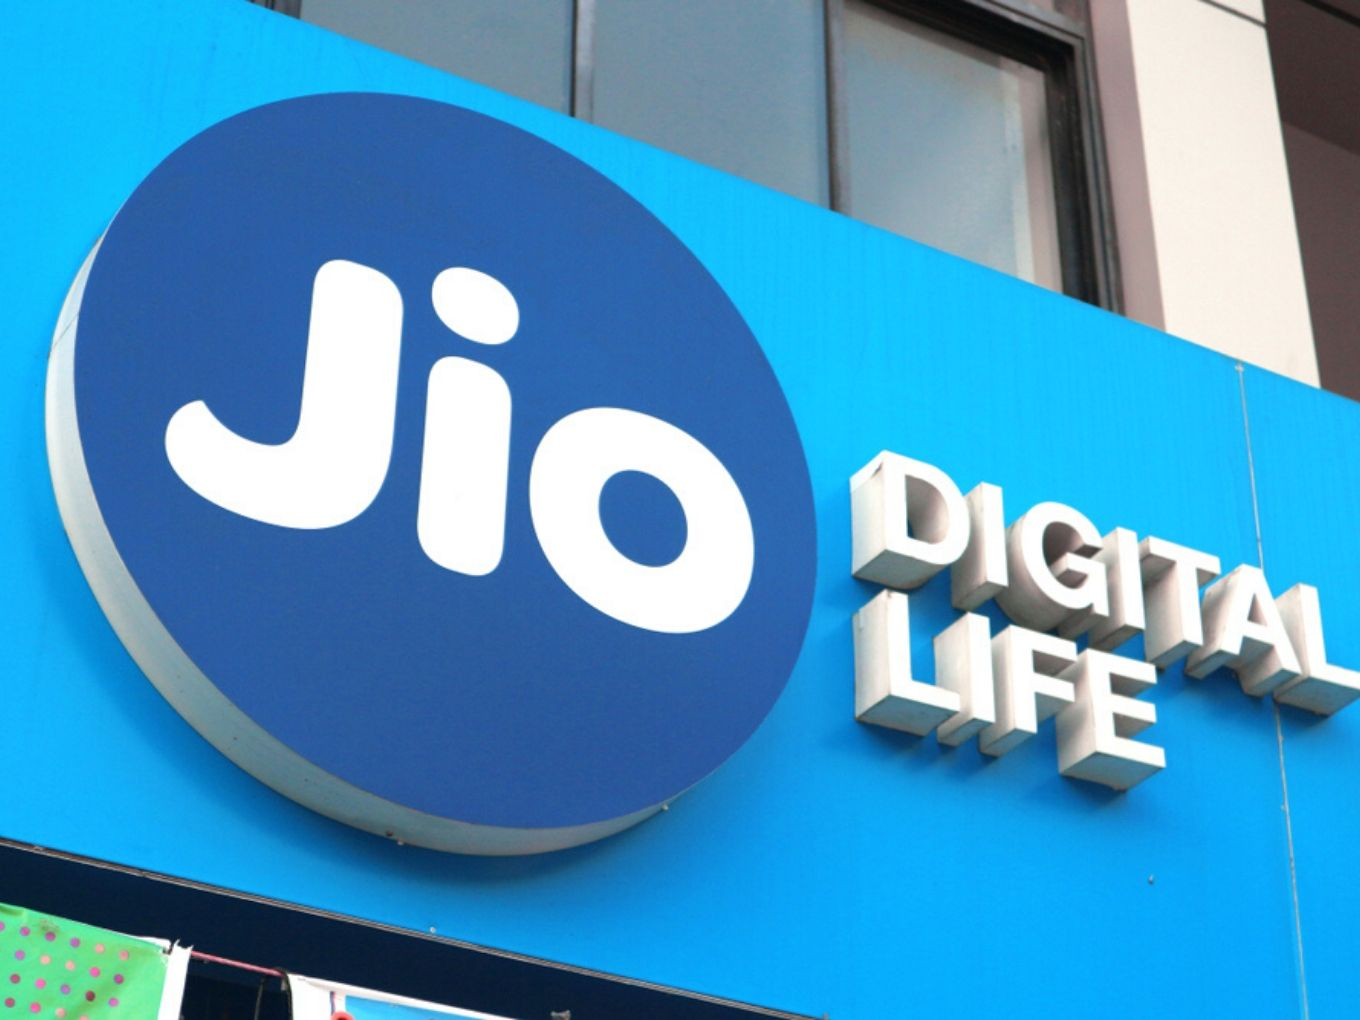 Intel Capital to buy 0.39% stake in Jio Platforms for ₹1,894 crore